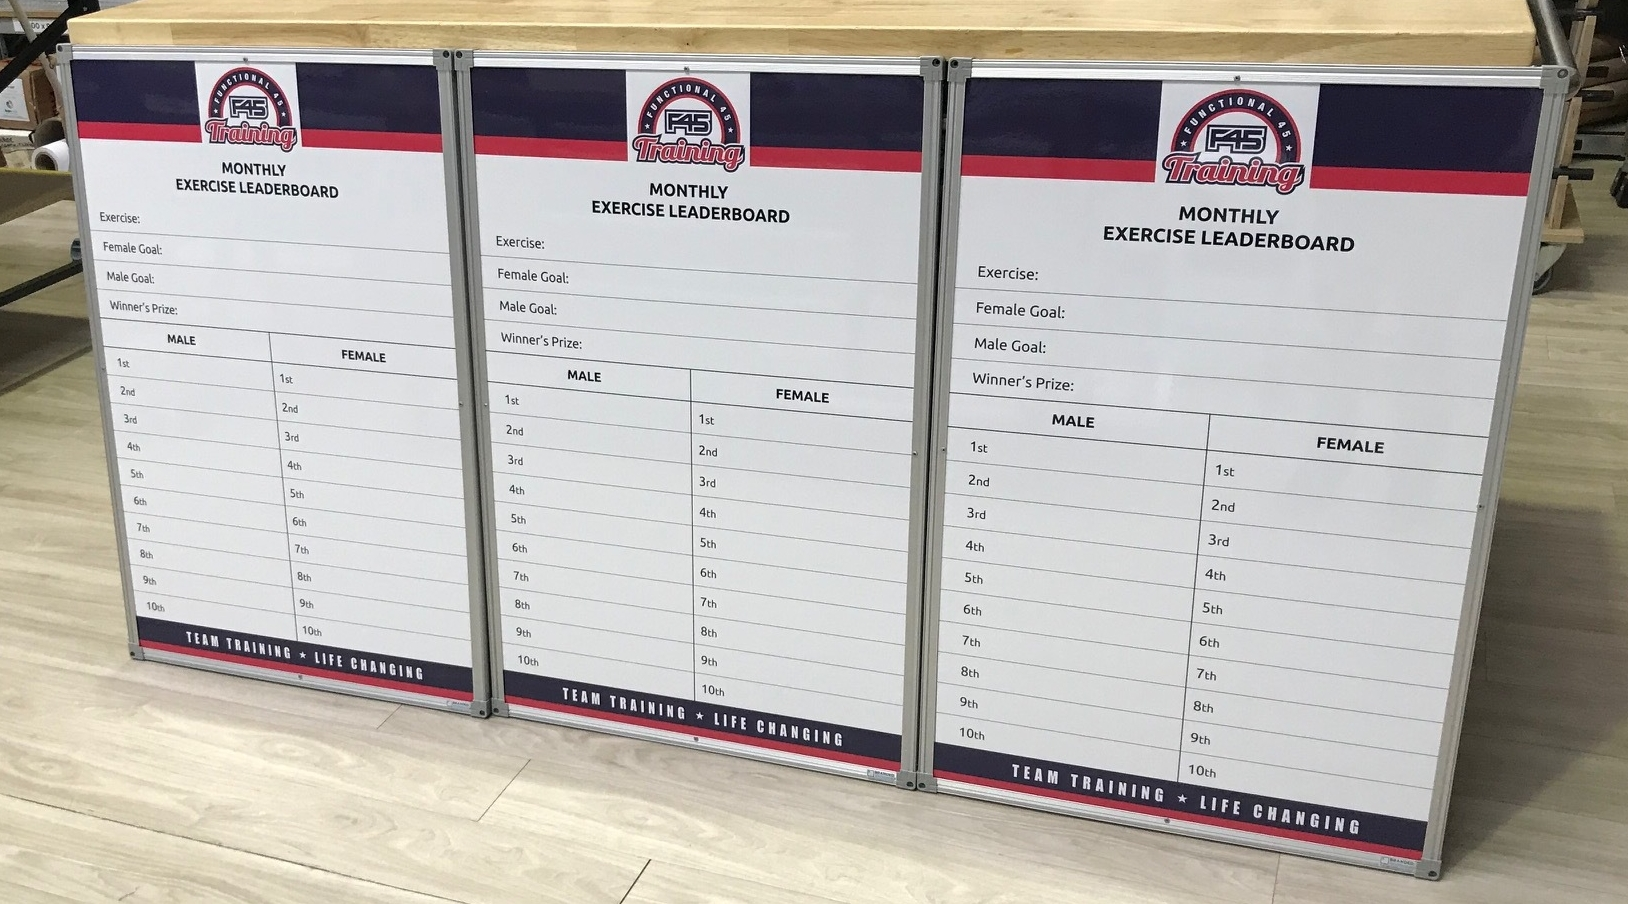 F45 Exercise Leaderboards